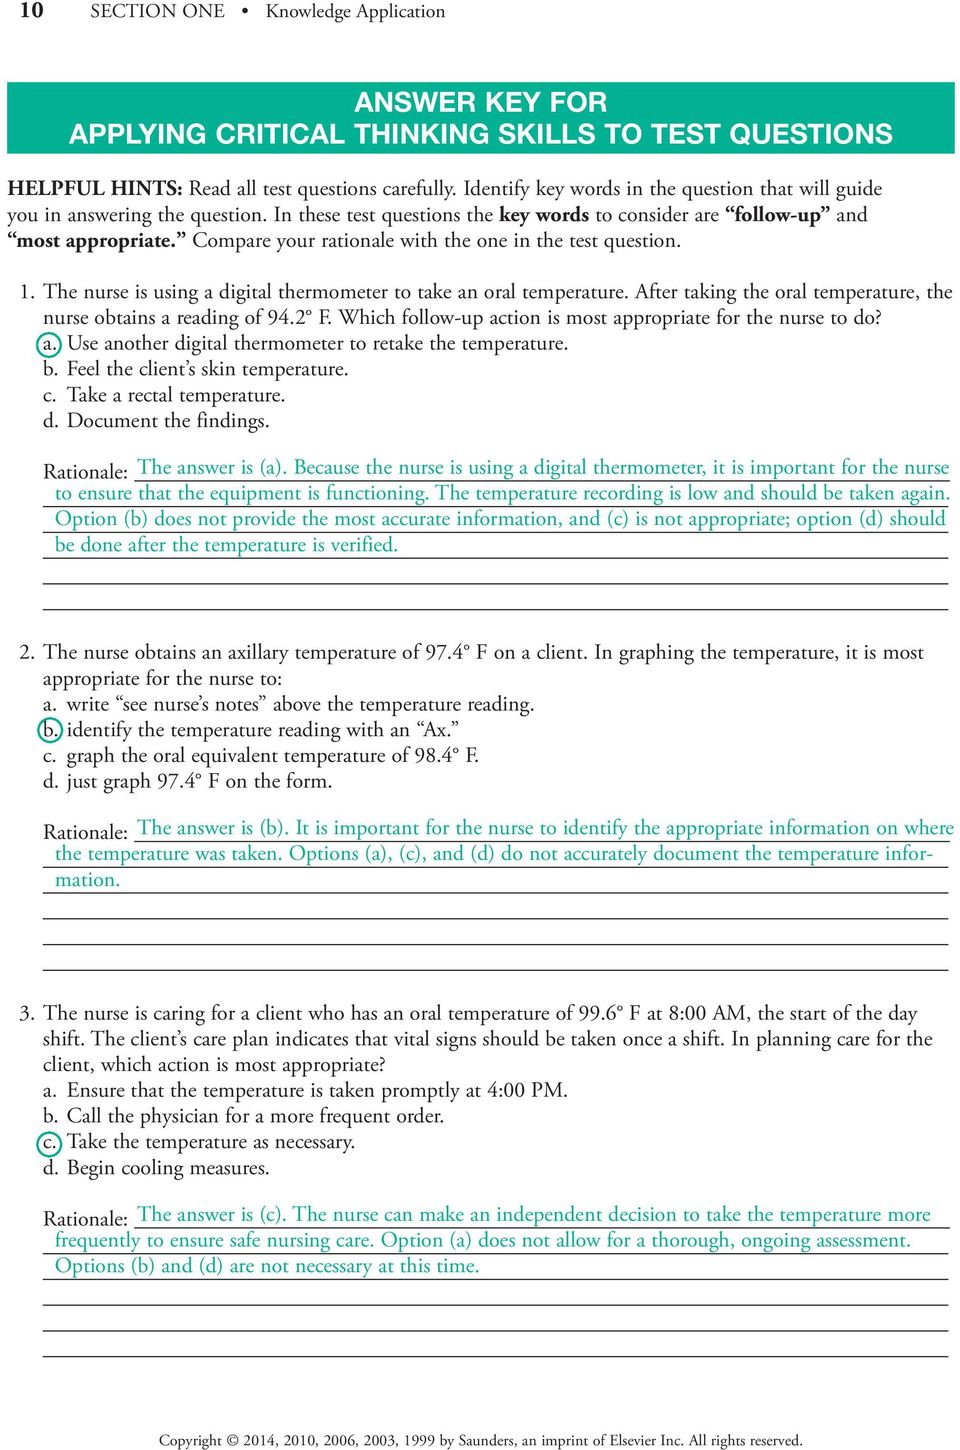 Section One One Knowledge Application Pdf